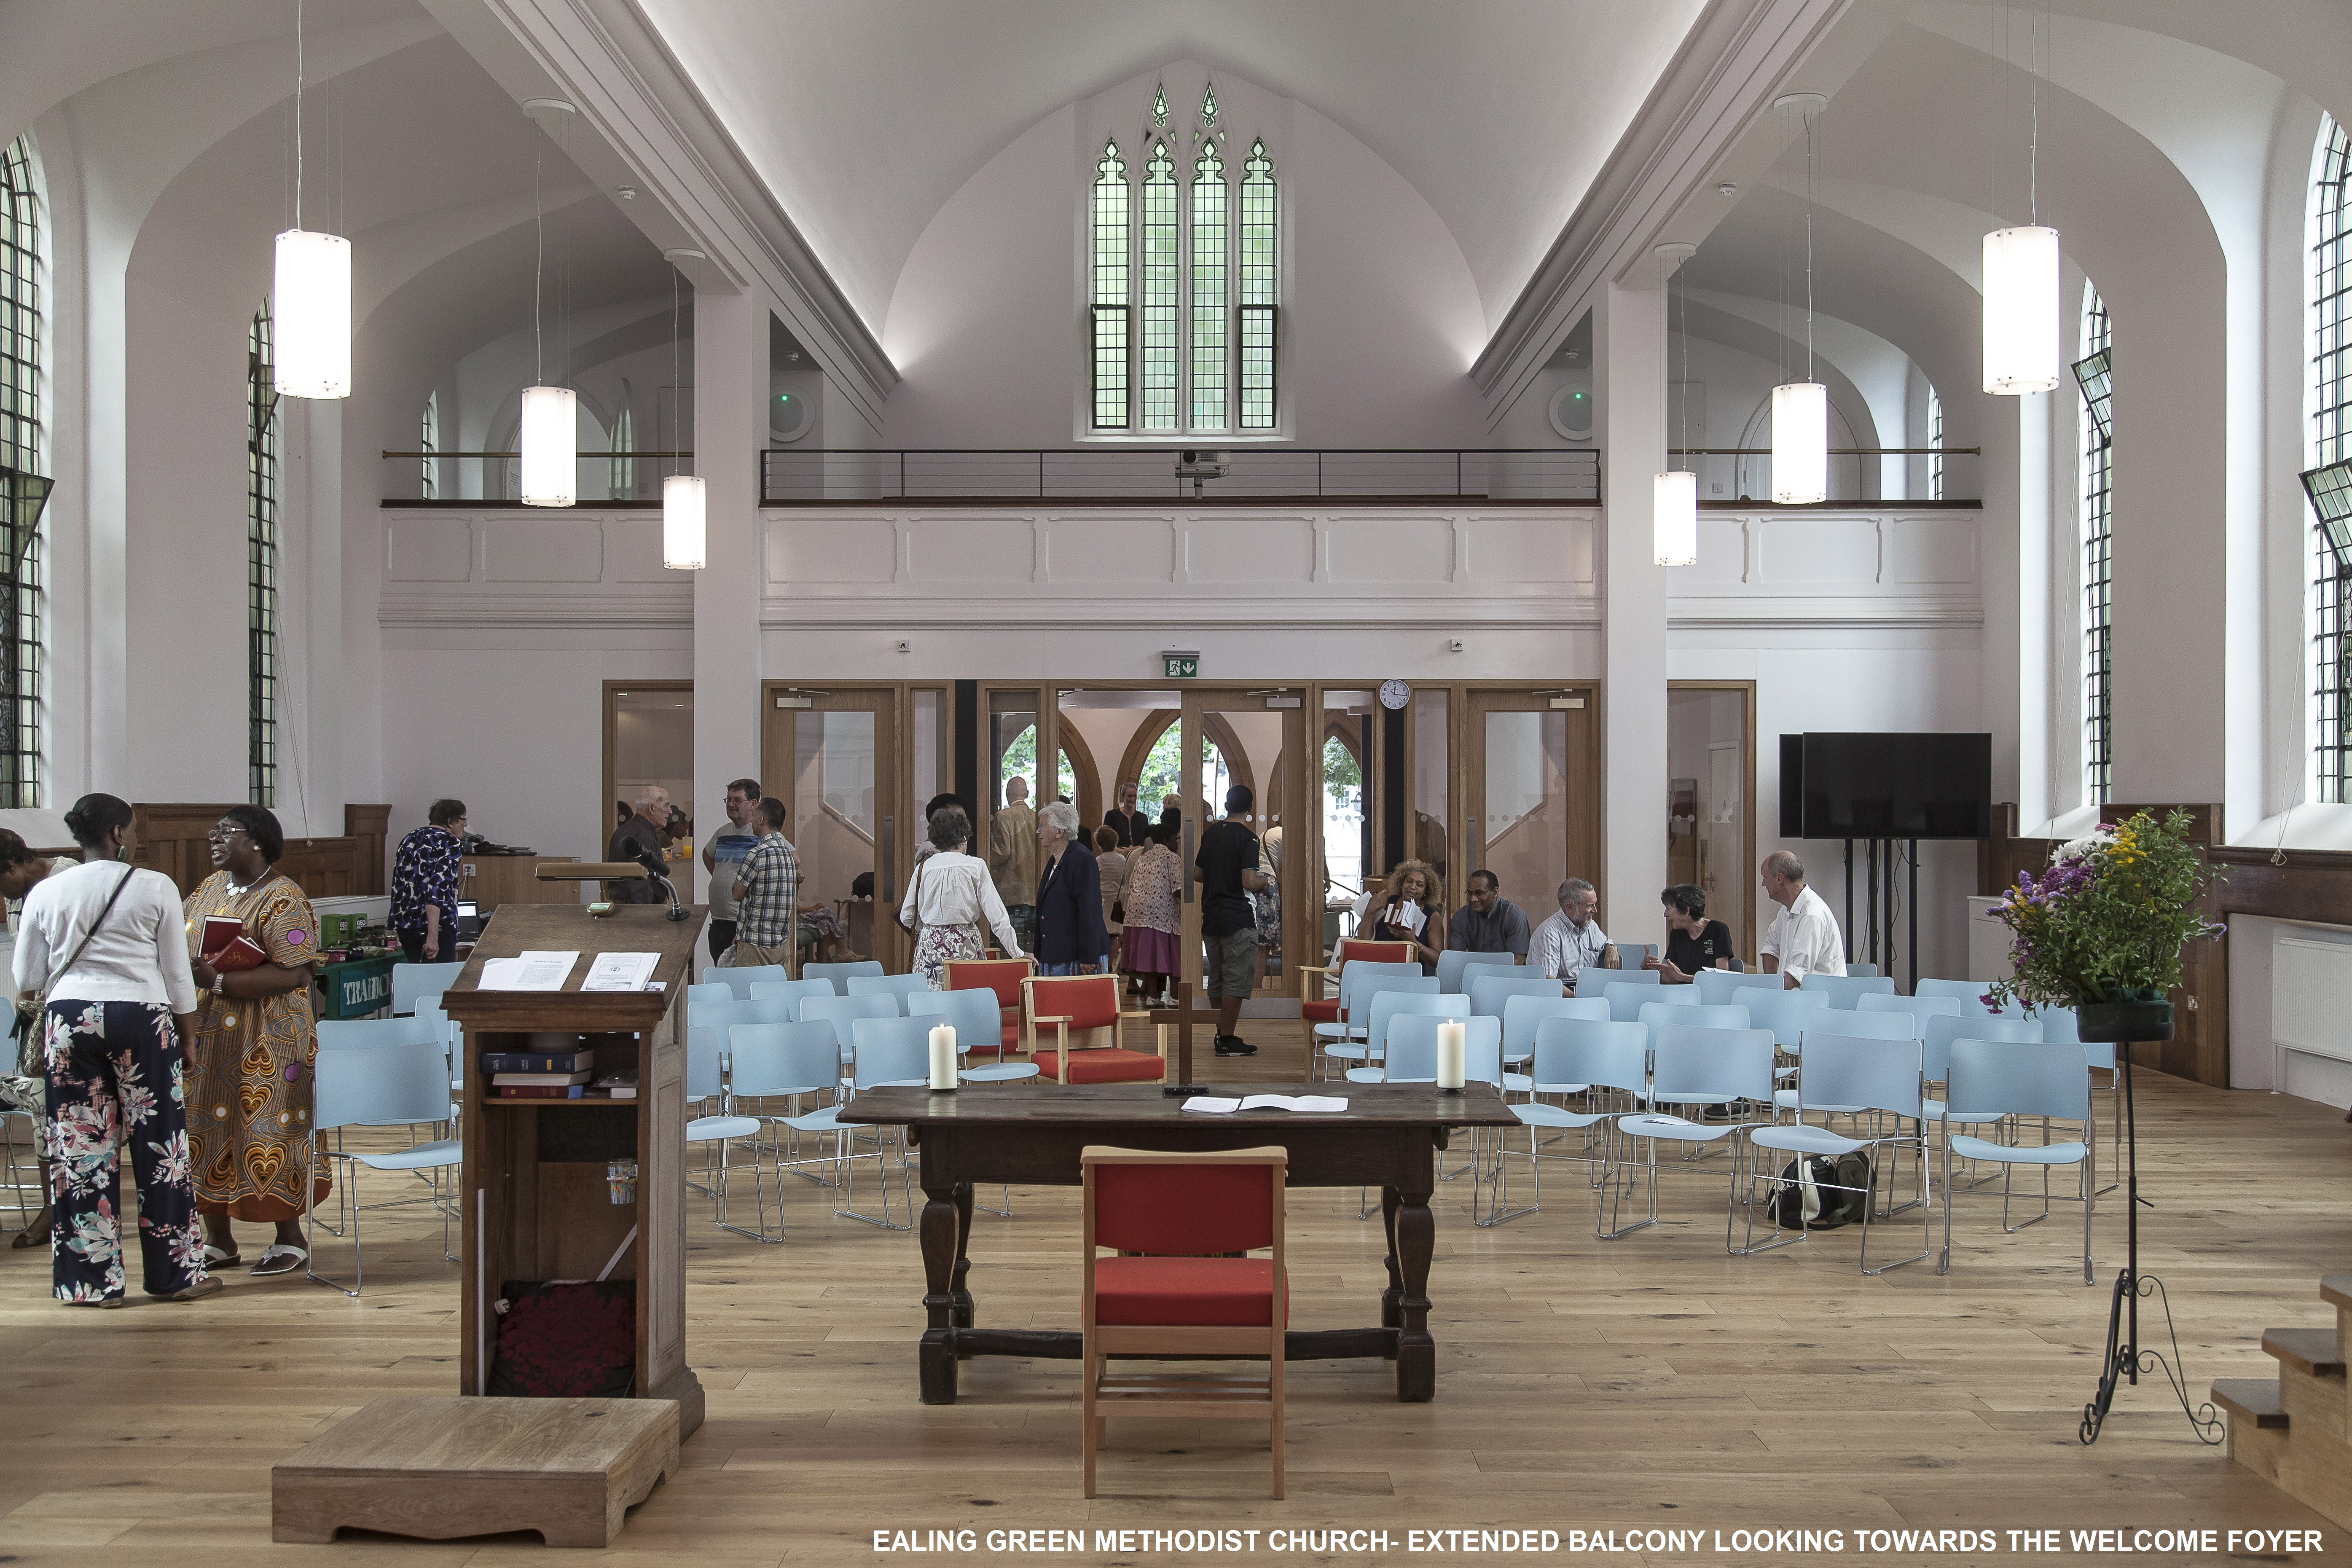 Ealing Green Church, extended balcony looking towards the Welcome foyer